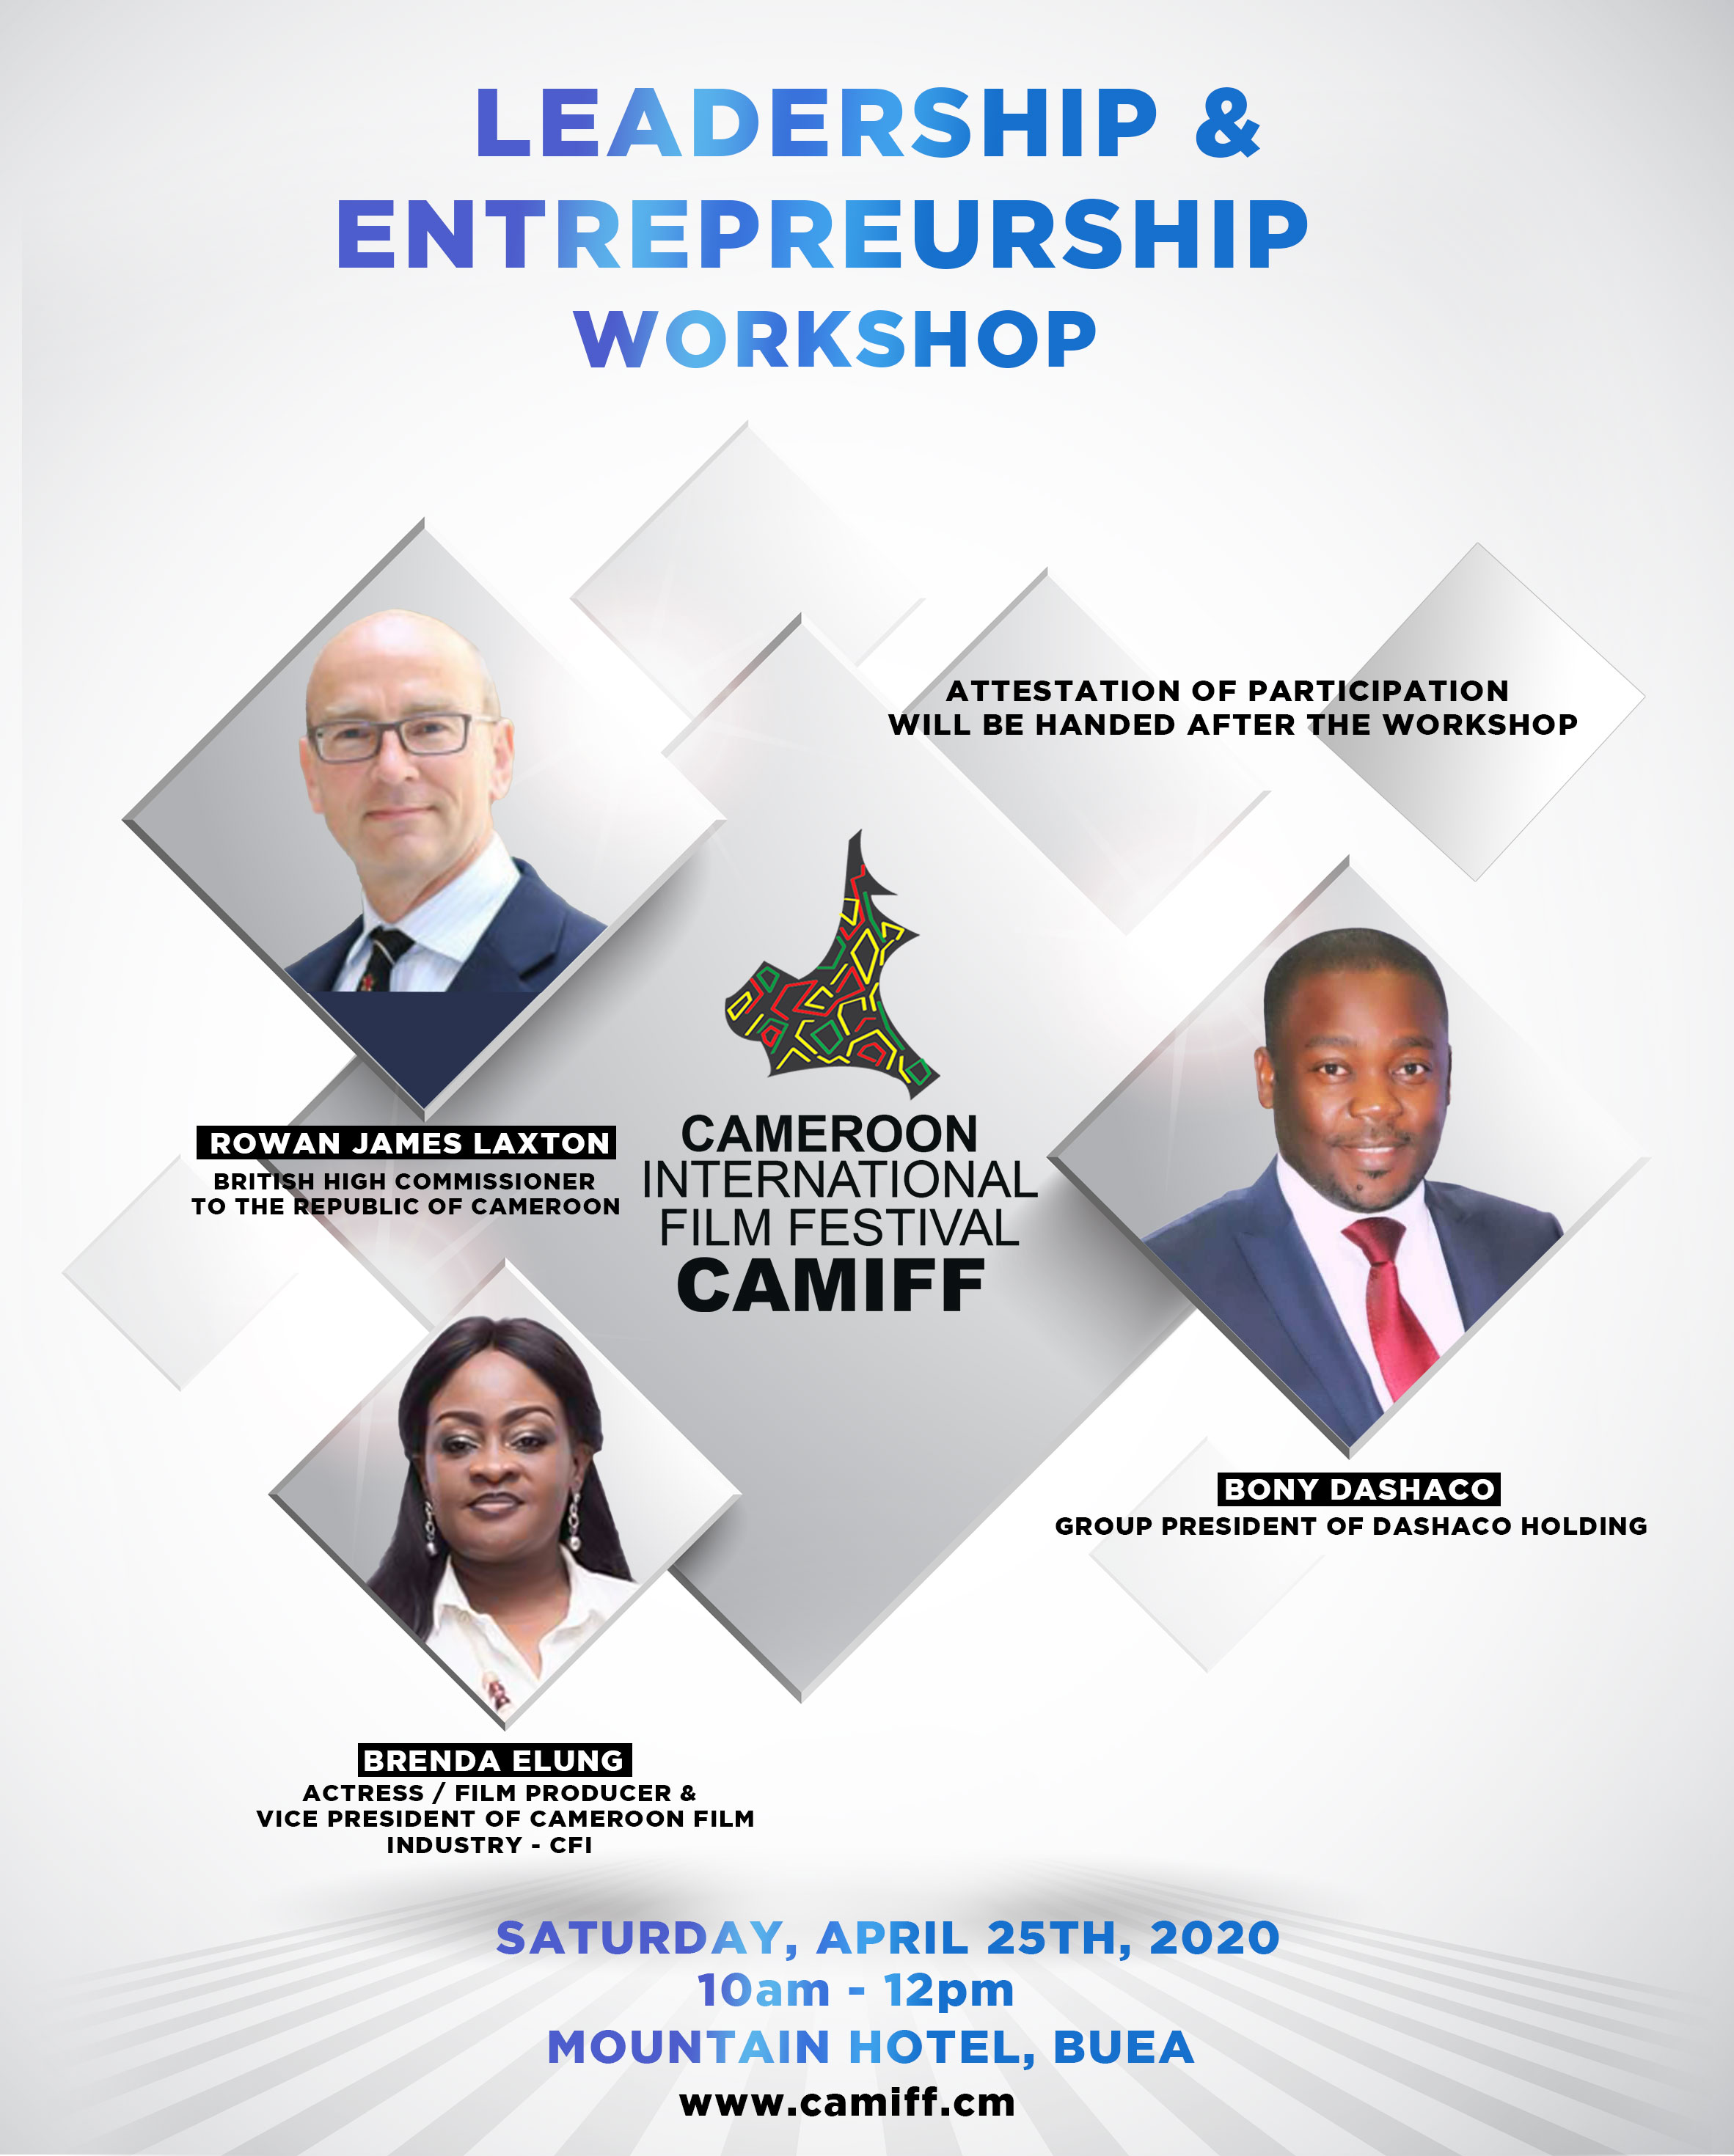 Leadership & Entrepreneurship Workshop